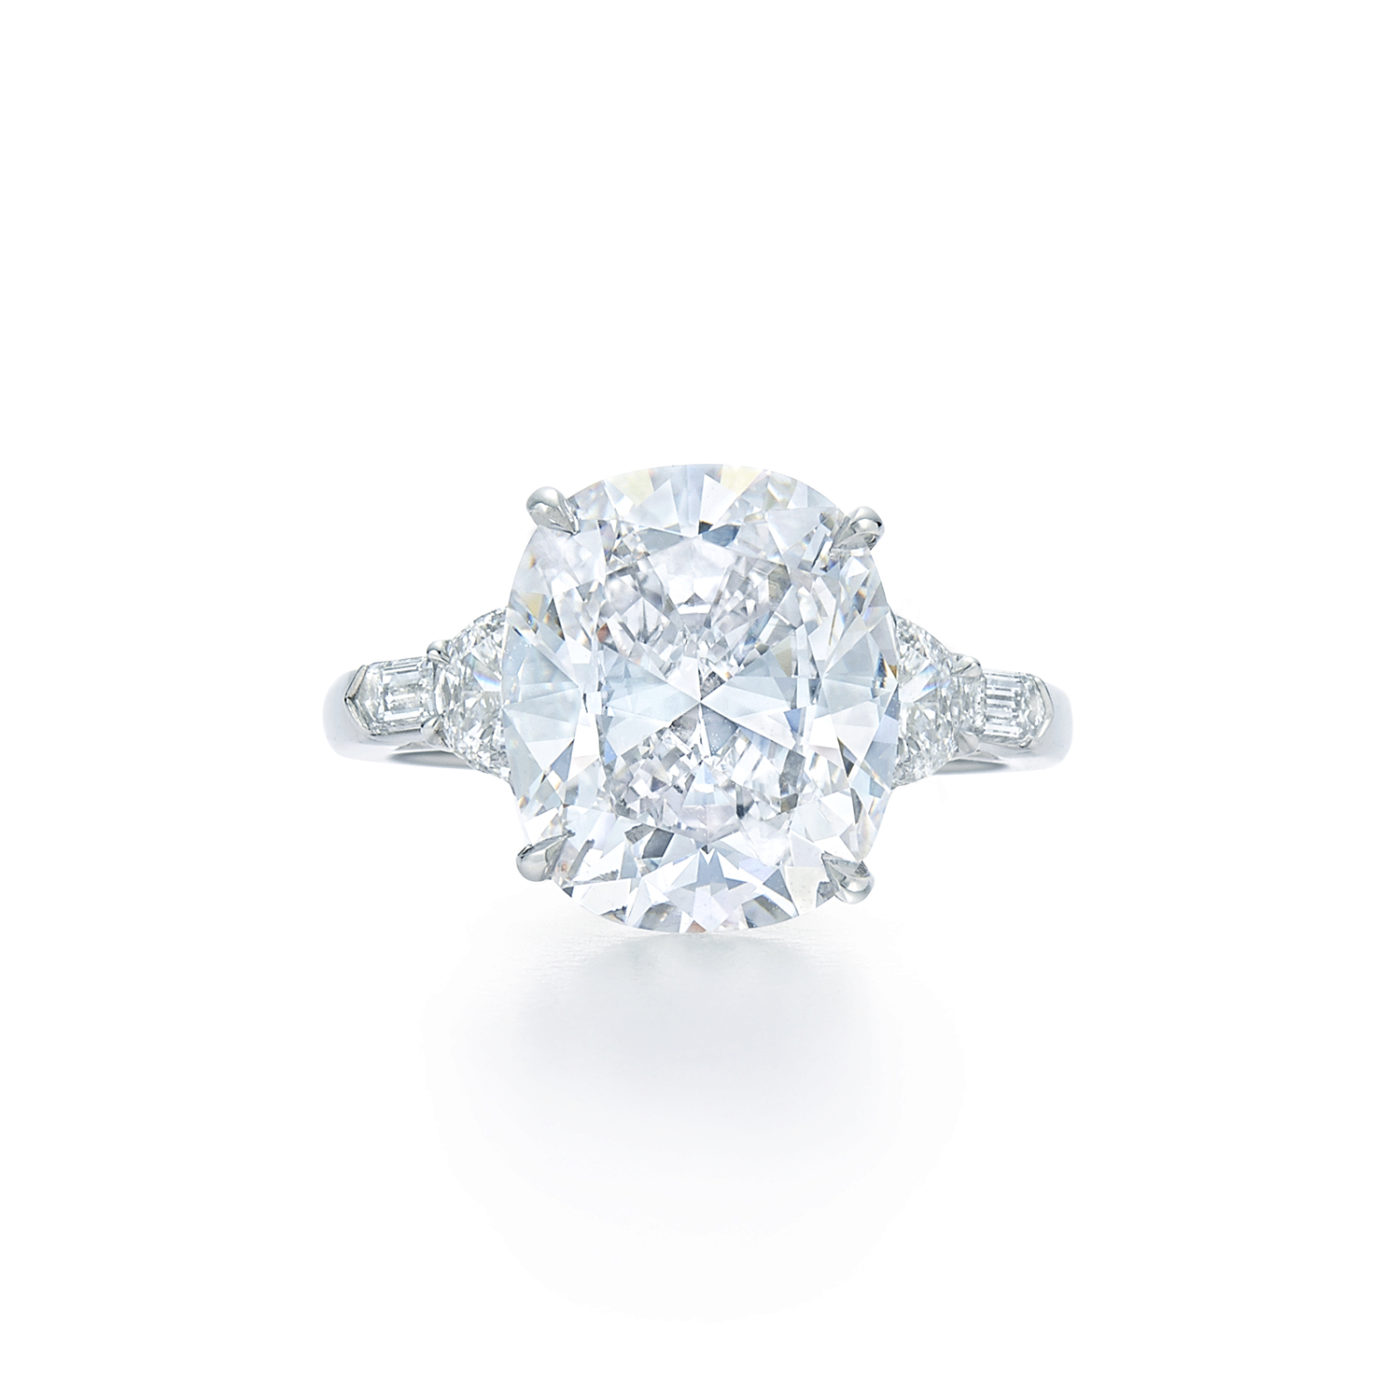 Cushion Cut Diamond Engagement Ring With Half Moon And Bullet Side Stones In Platinum Kwiat